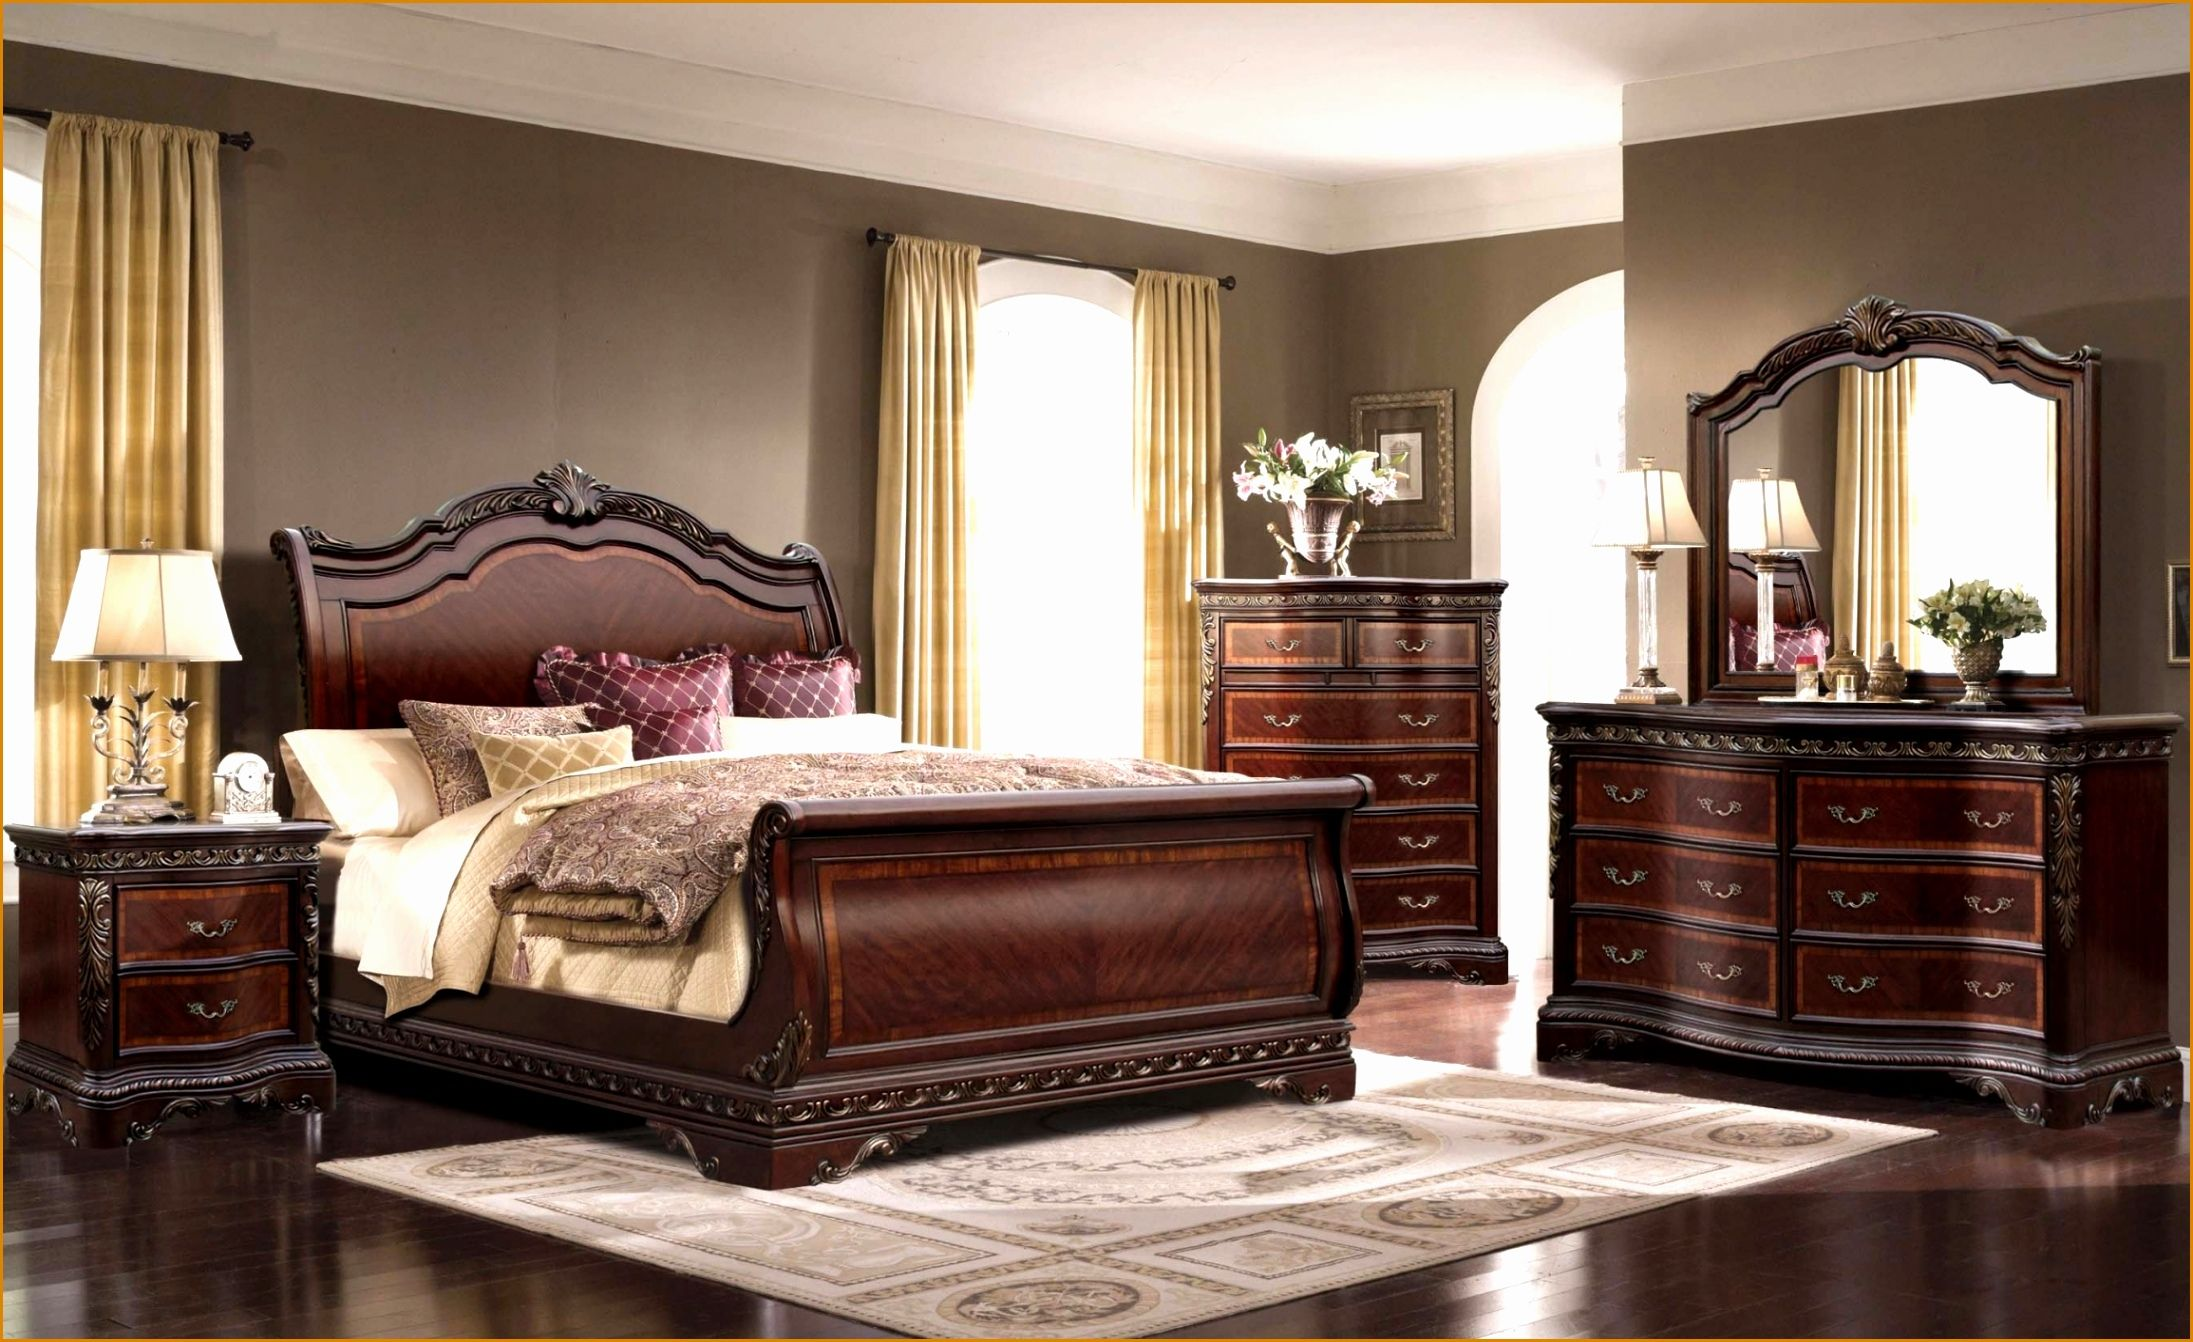 How To Choose A Big Bed For A Nice Bedroom Affordable Bedroom